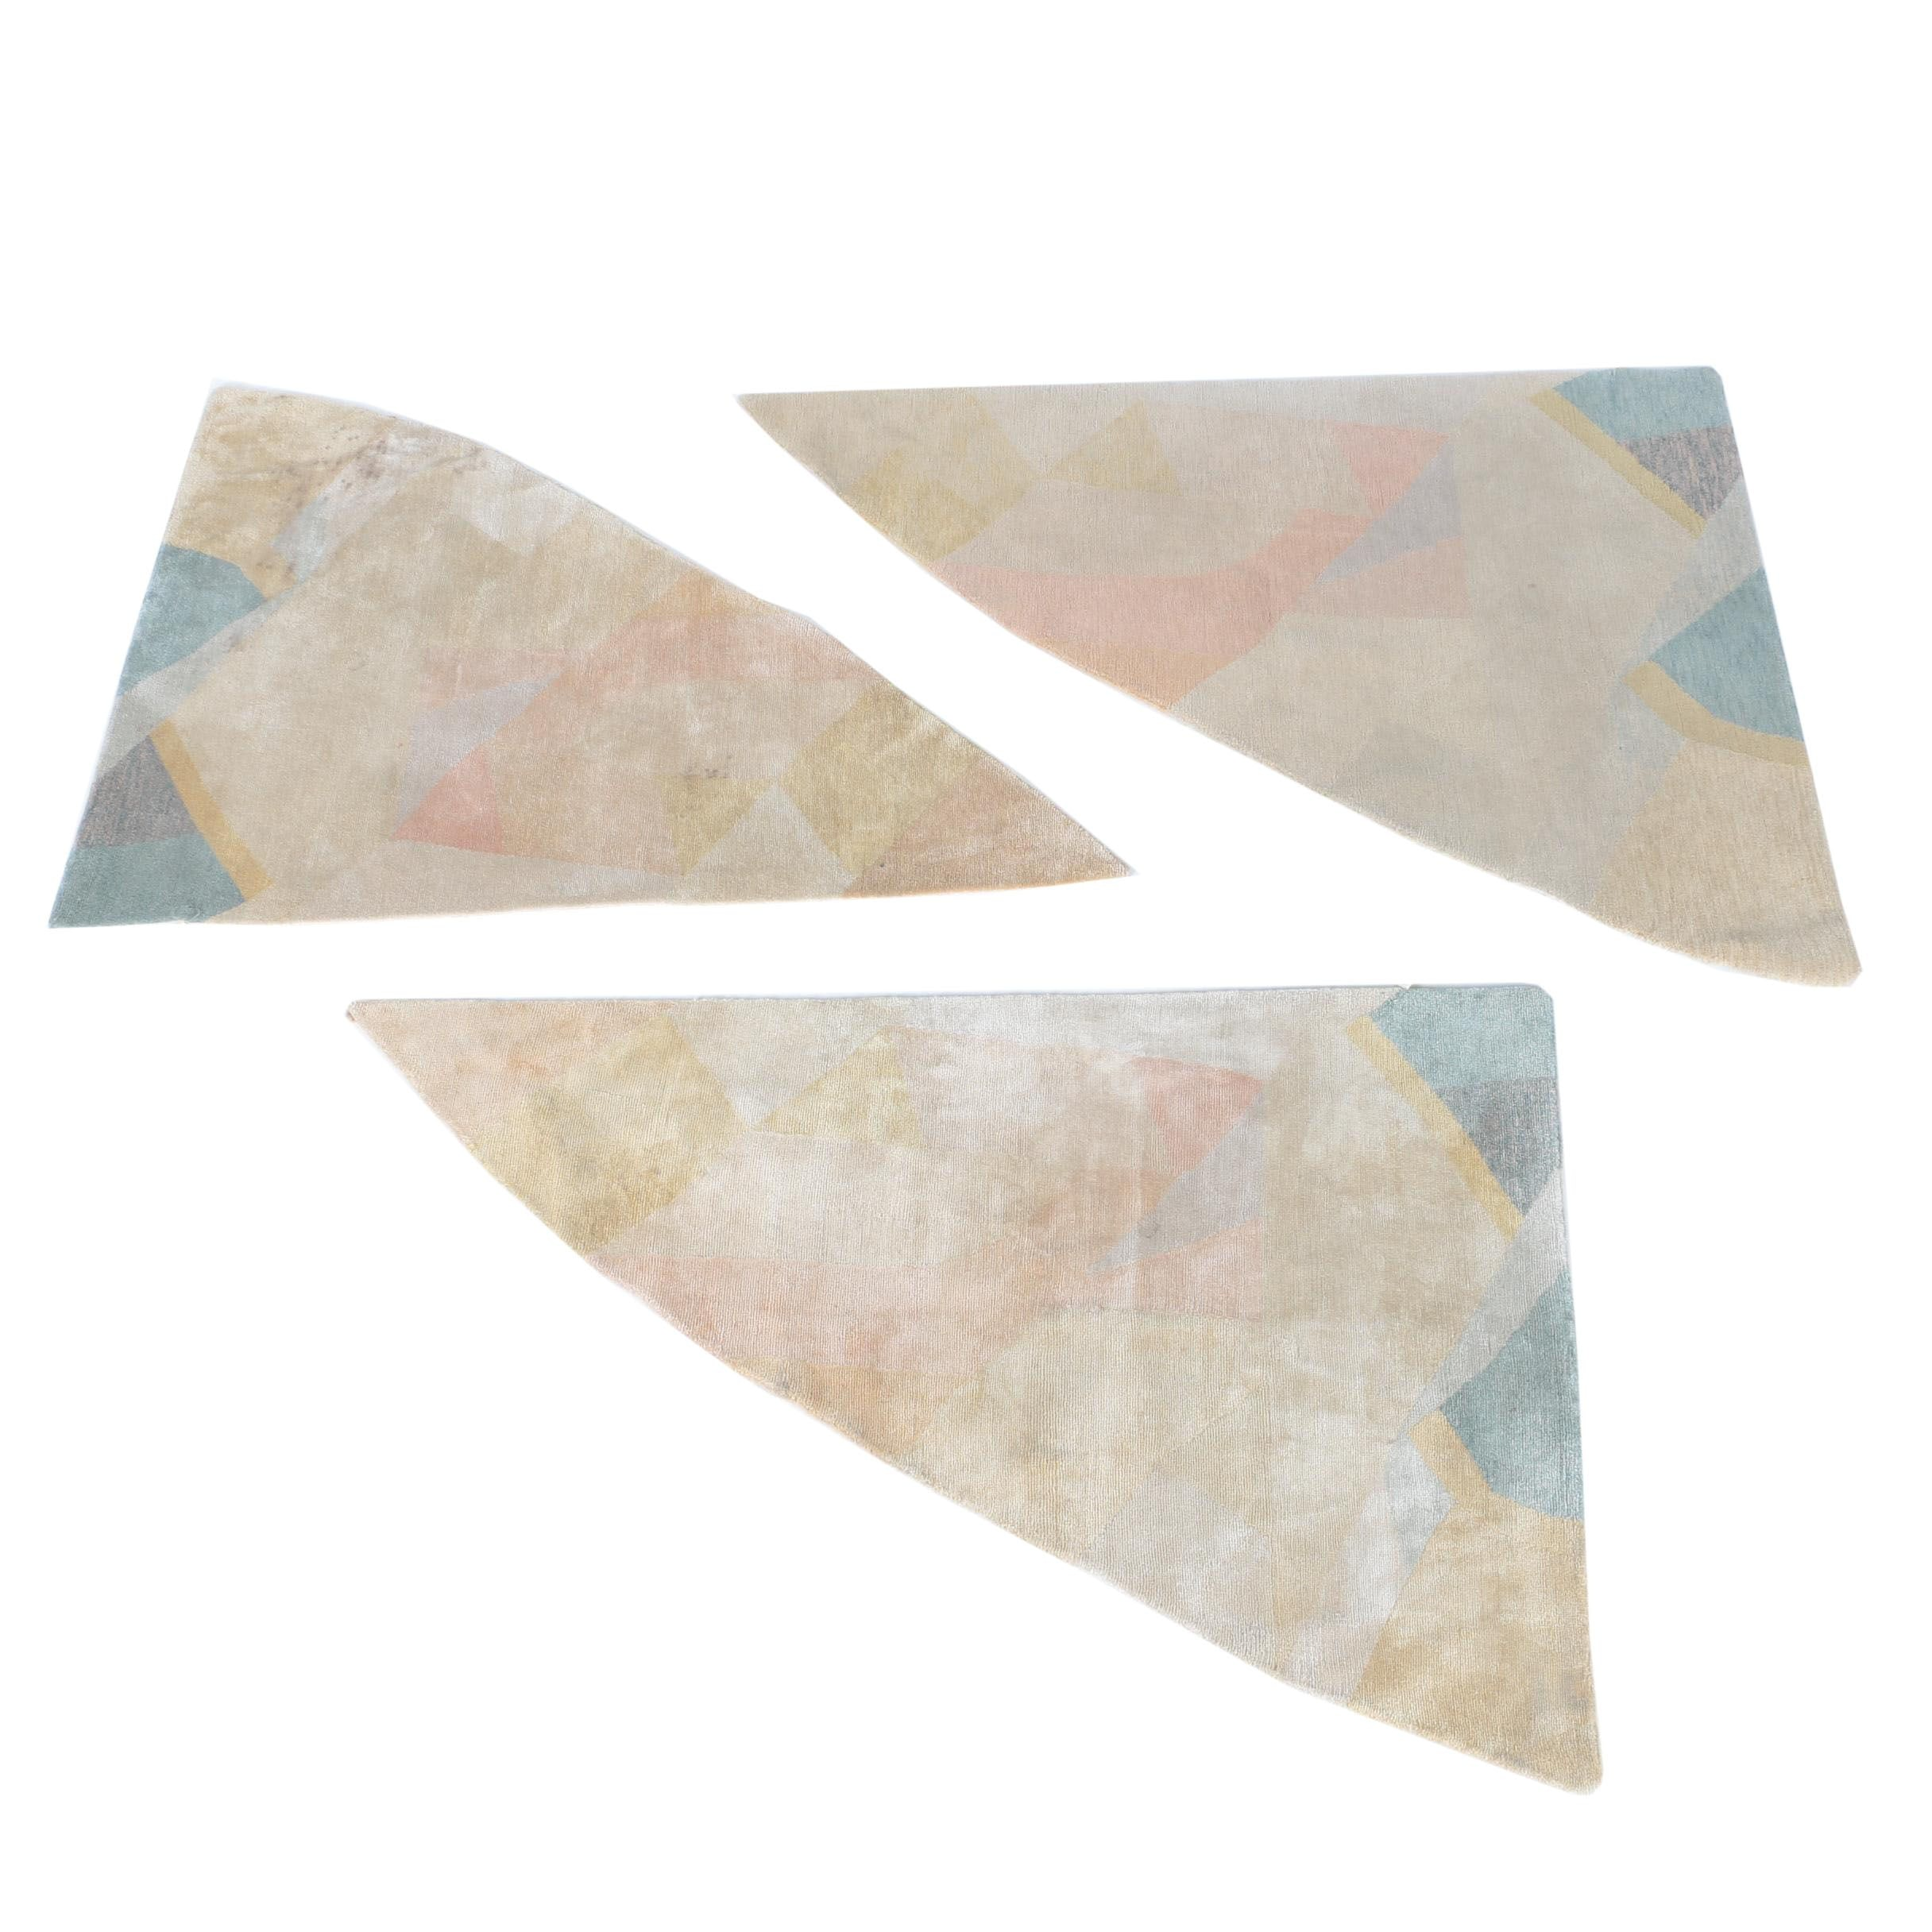 Hand-Knotted Contemporary Wool Triangular Accent Rugs